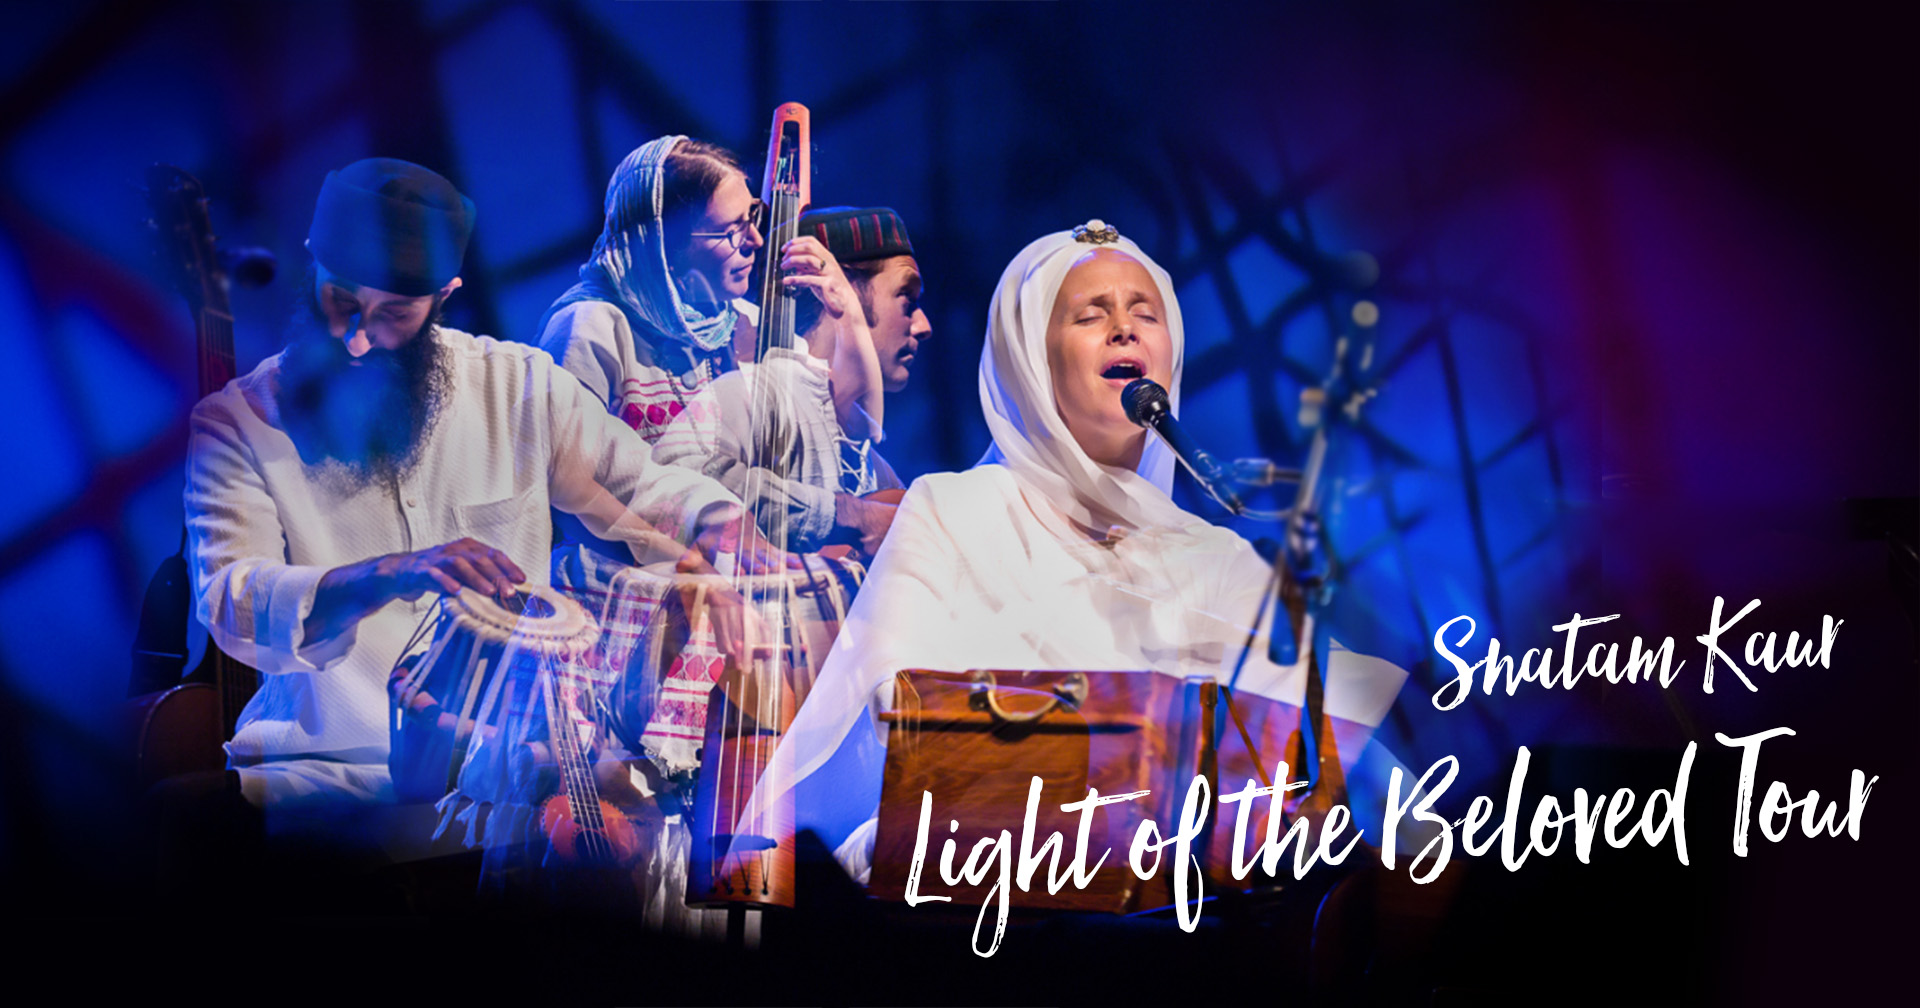 Tickets for Concerto de Cânticos Sagrados com Snatam Kaur in Lisboa from BrightStar Live Events